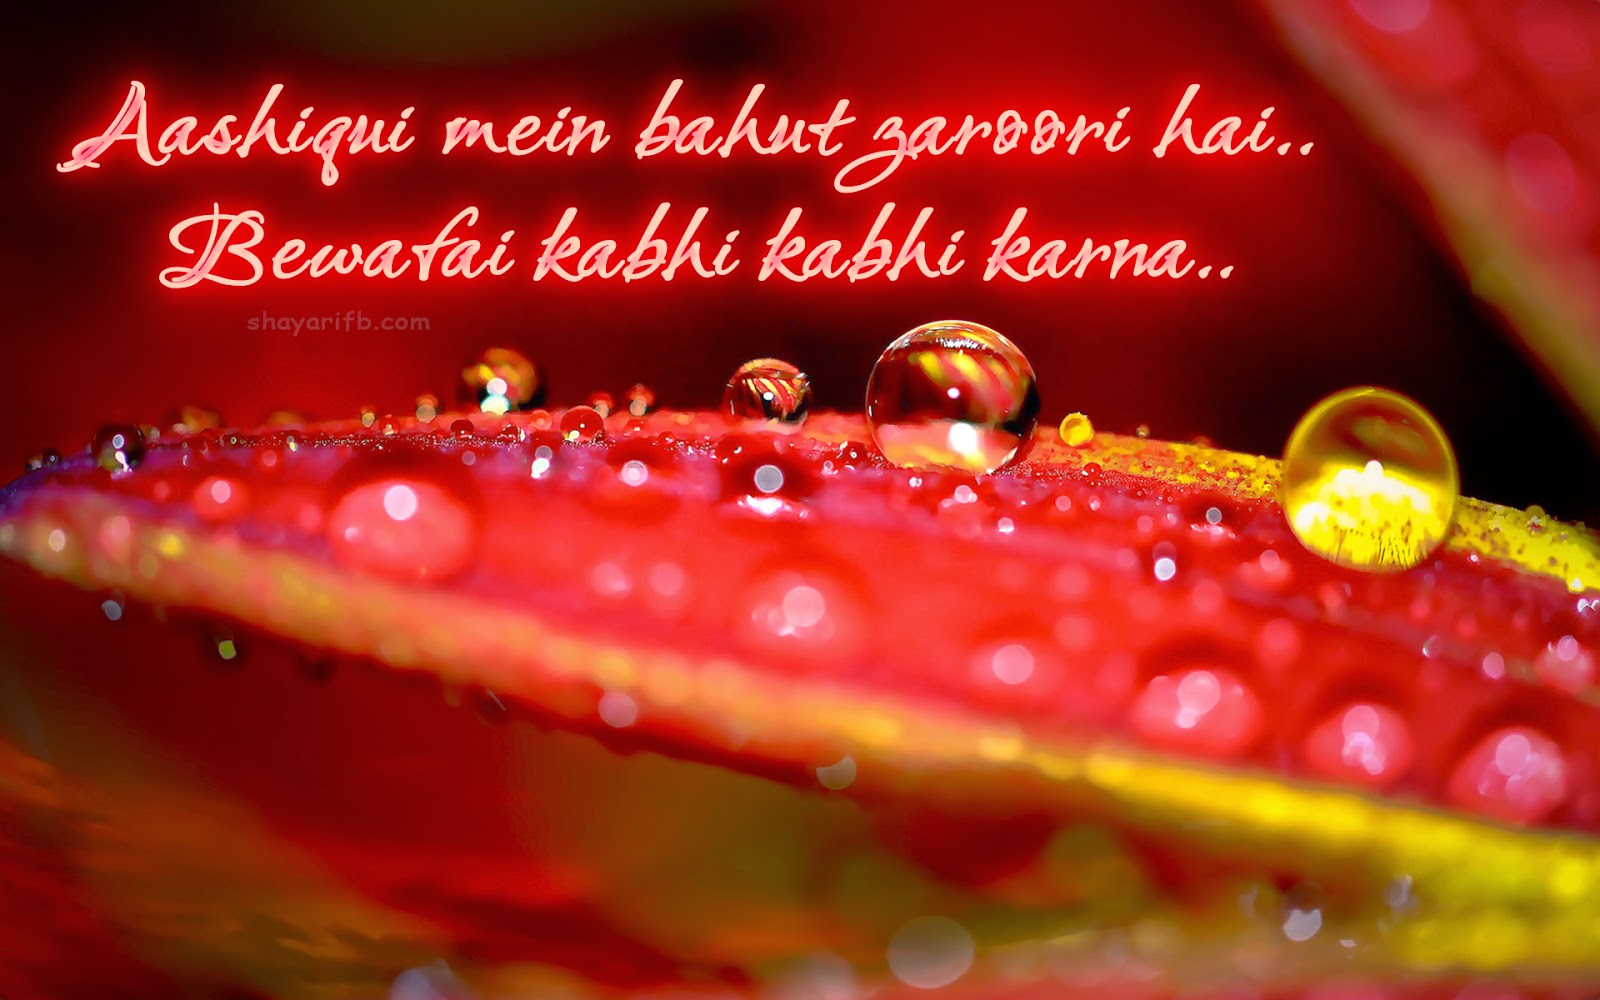 Love shayari Best shayari HIndi Aashiqui wallpaper HDLove Shayari and Sad Shayari